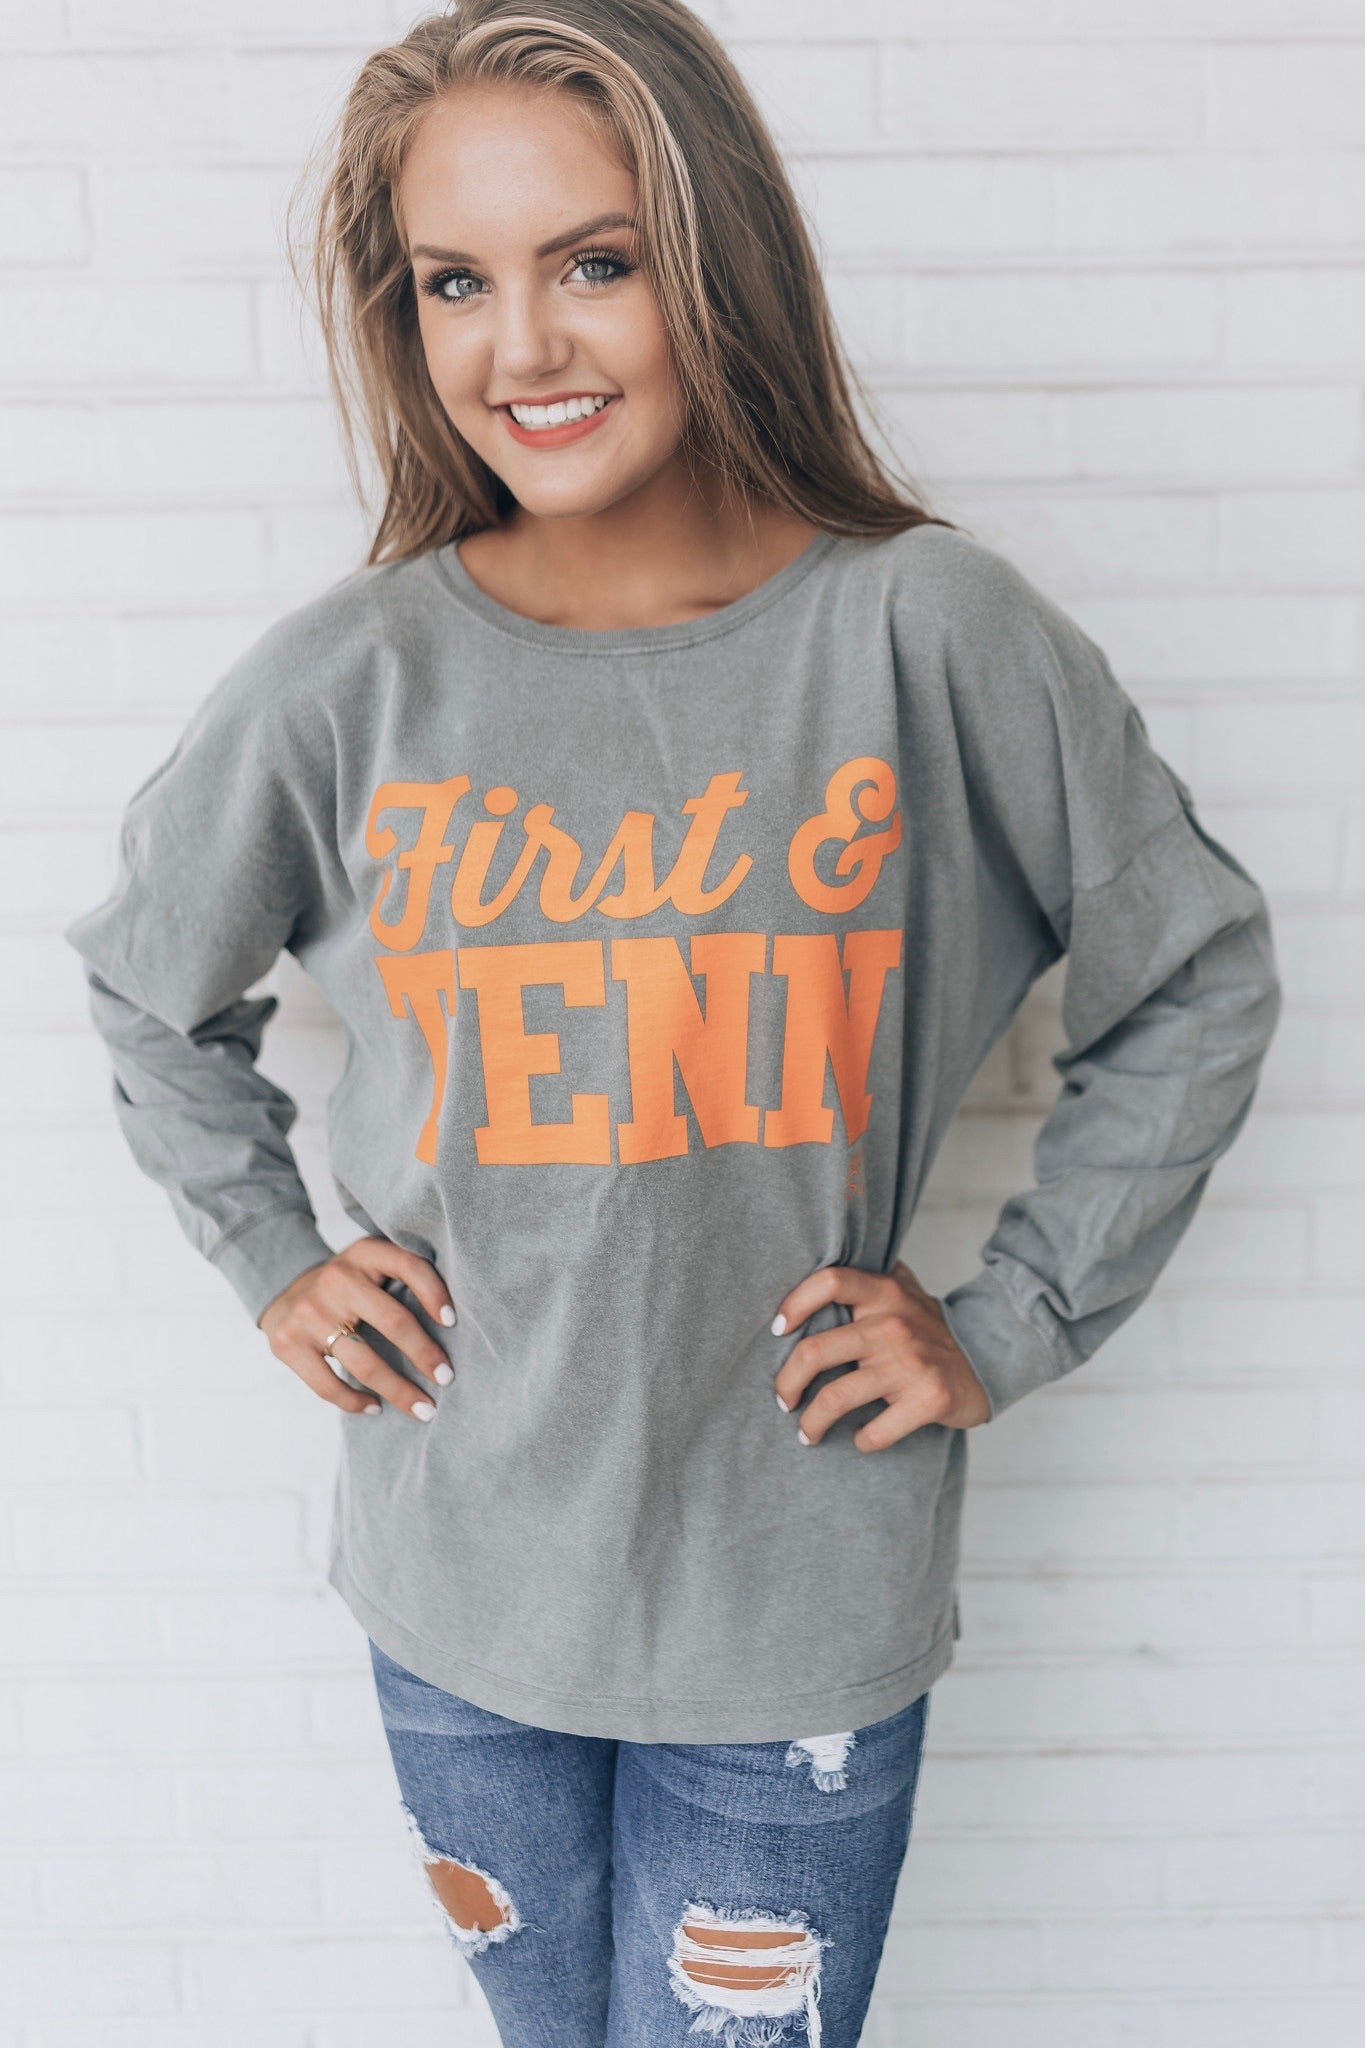 First & Tenn Over-sized Grey Tee